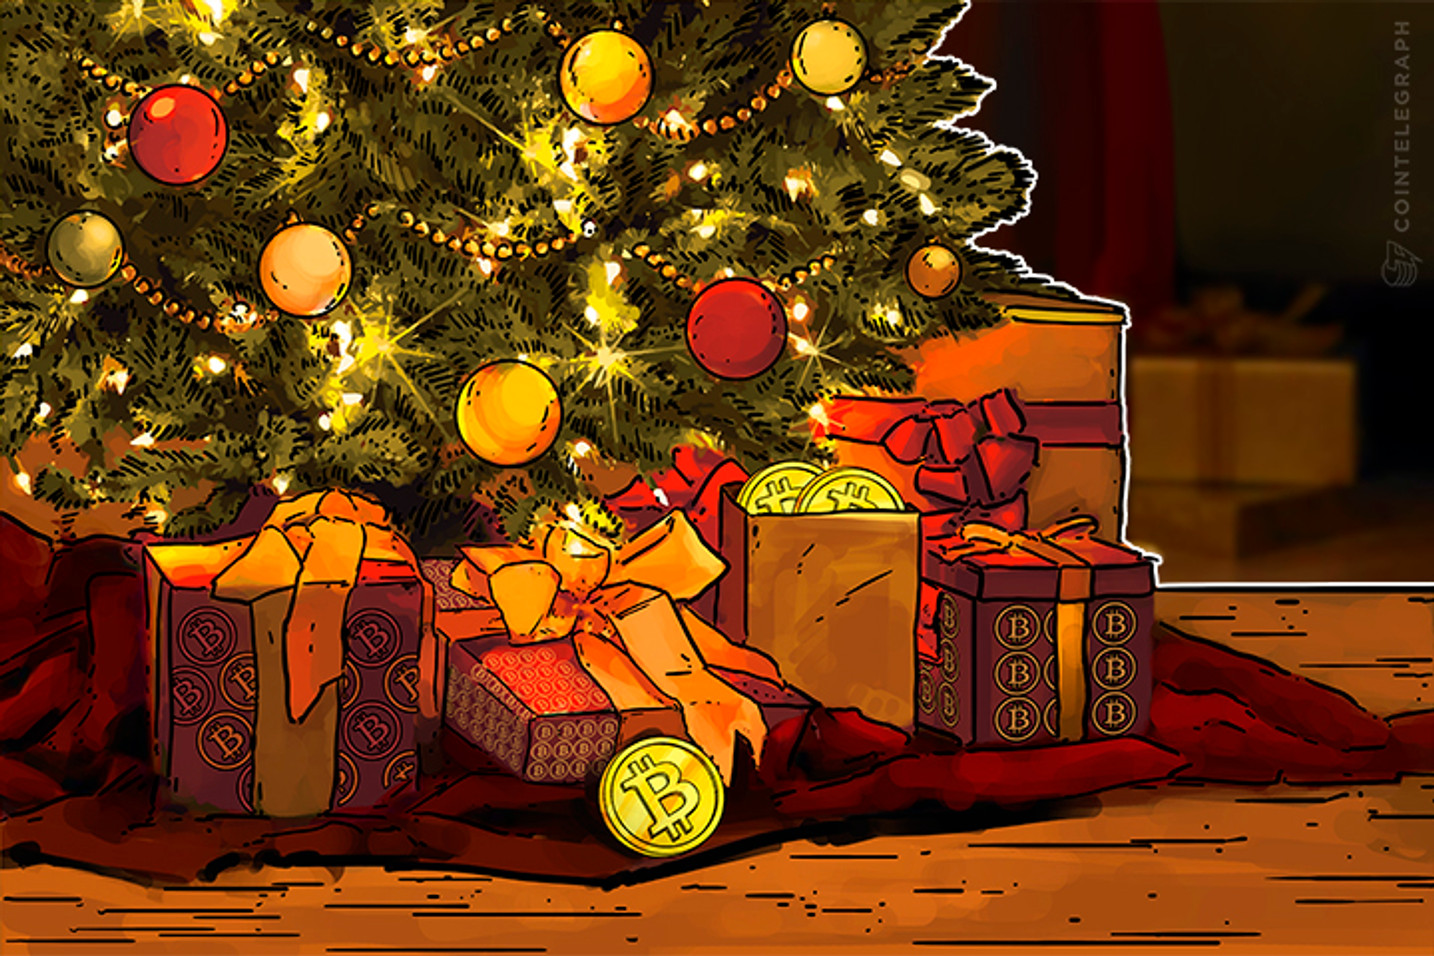 Bitcoin Christmas Special: 2017 Was Wild Ride, Eventful 2018 Seems Likely